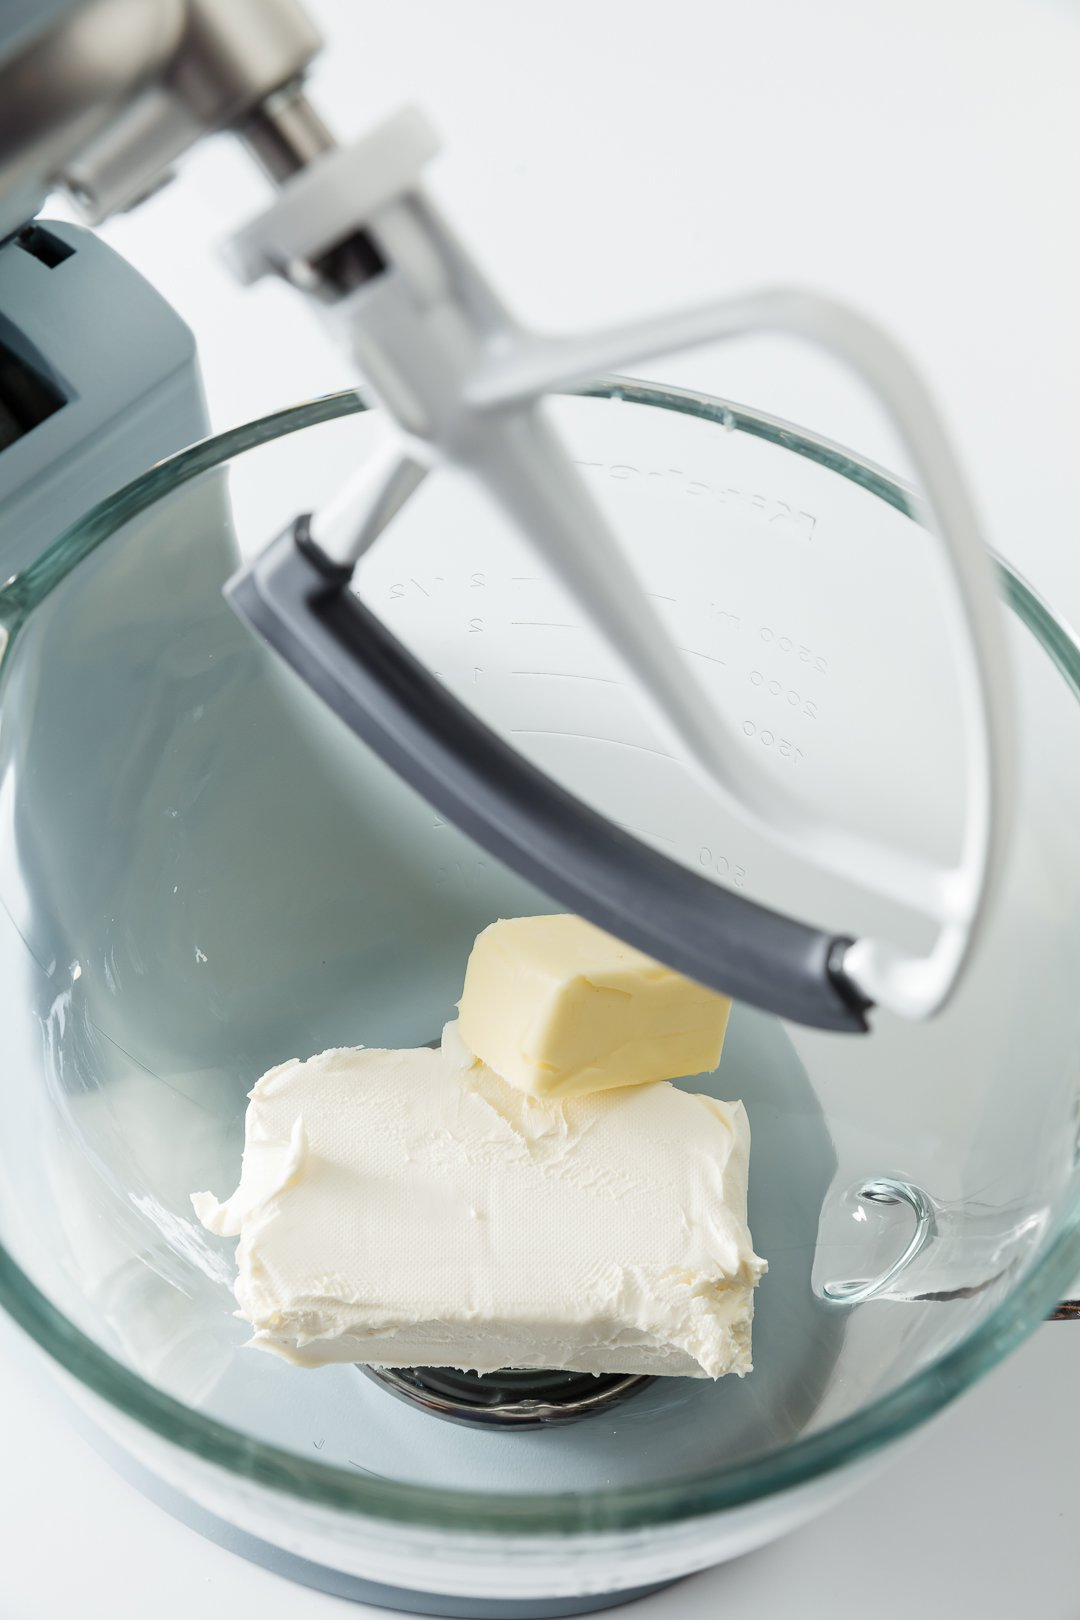 butter and cream cheese in a stand mixer bowl